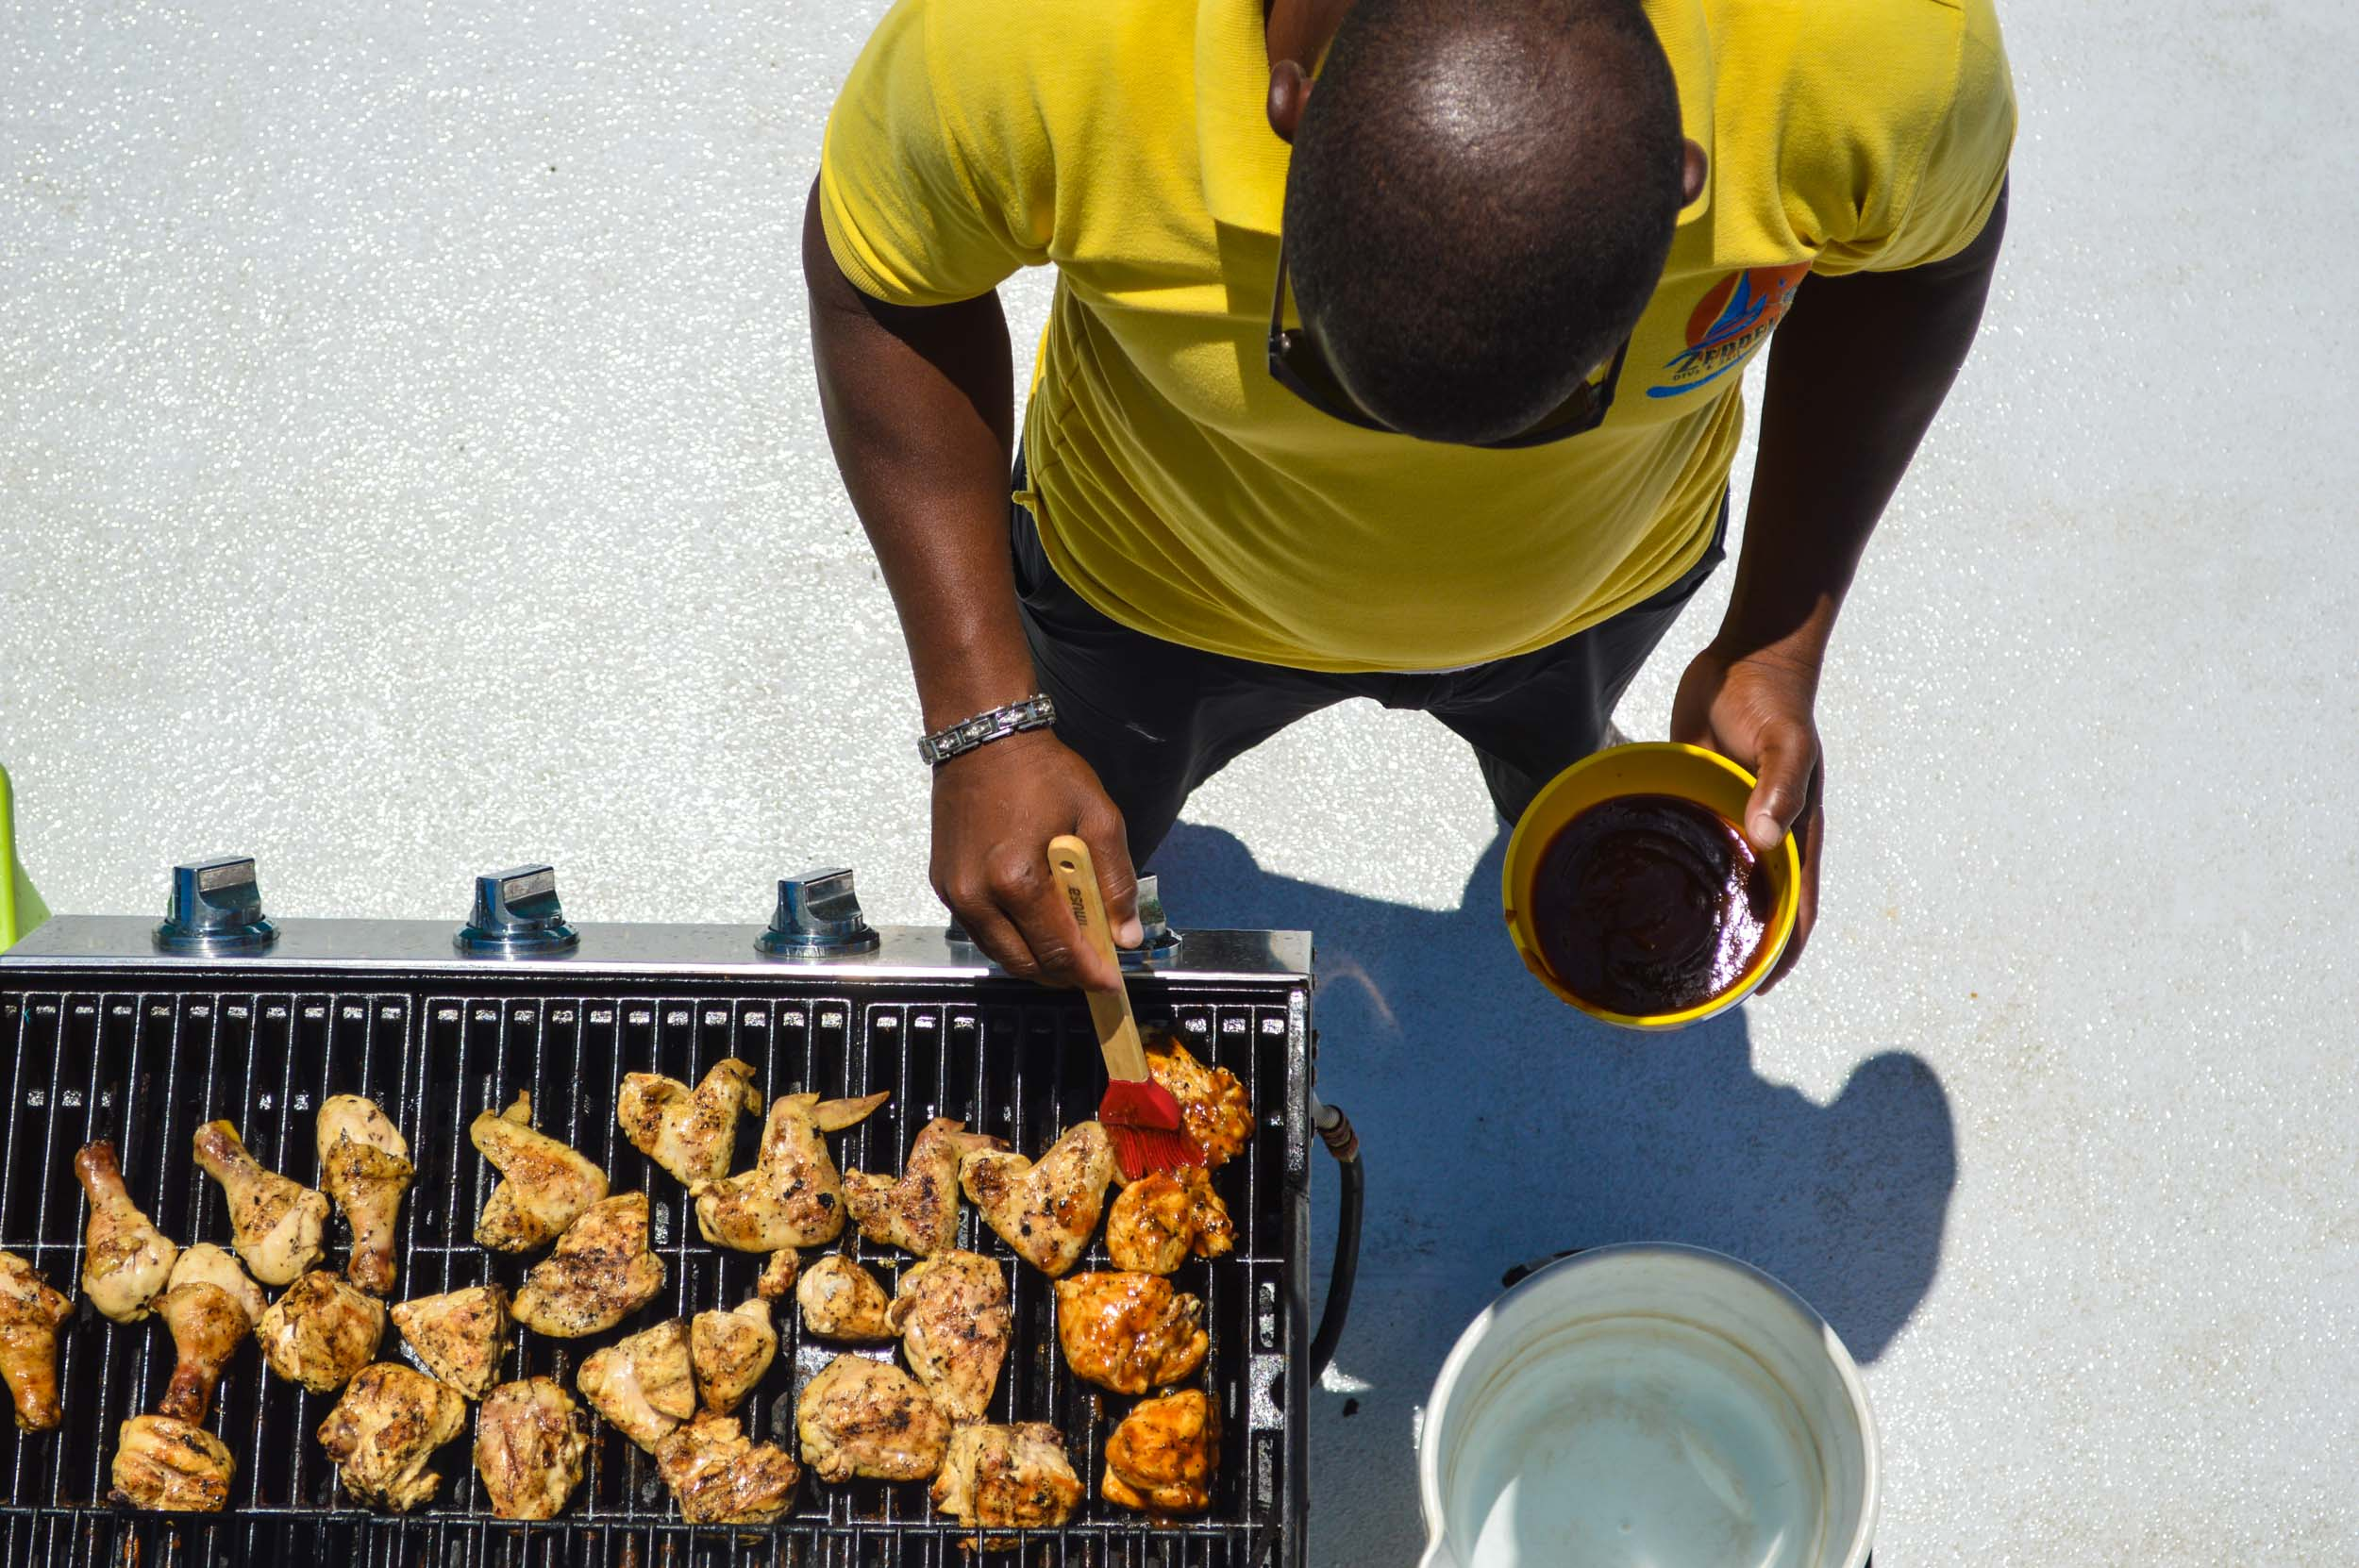 Full sized grill to prepare mouth-watering meals.